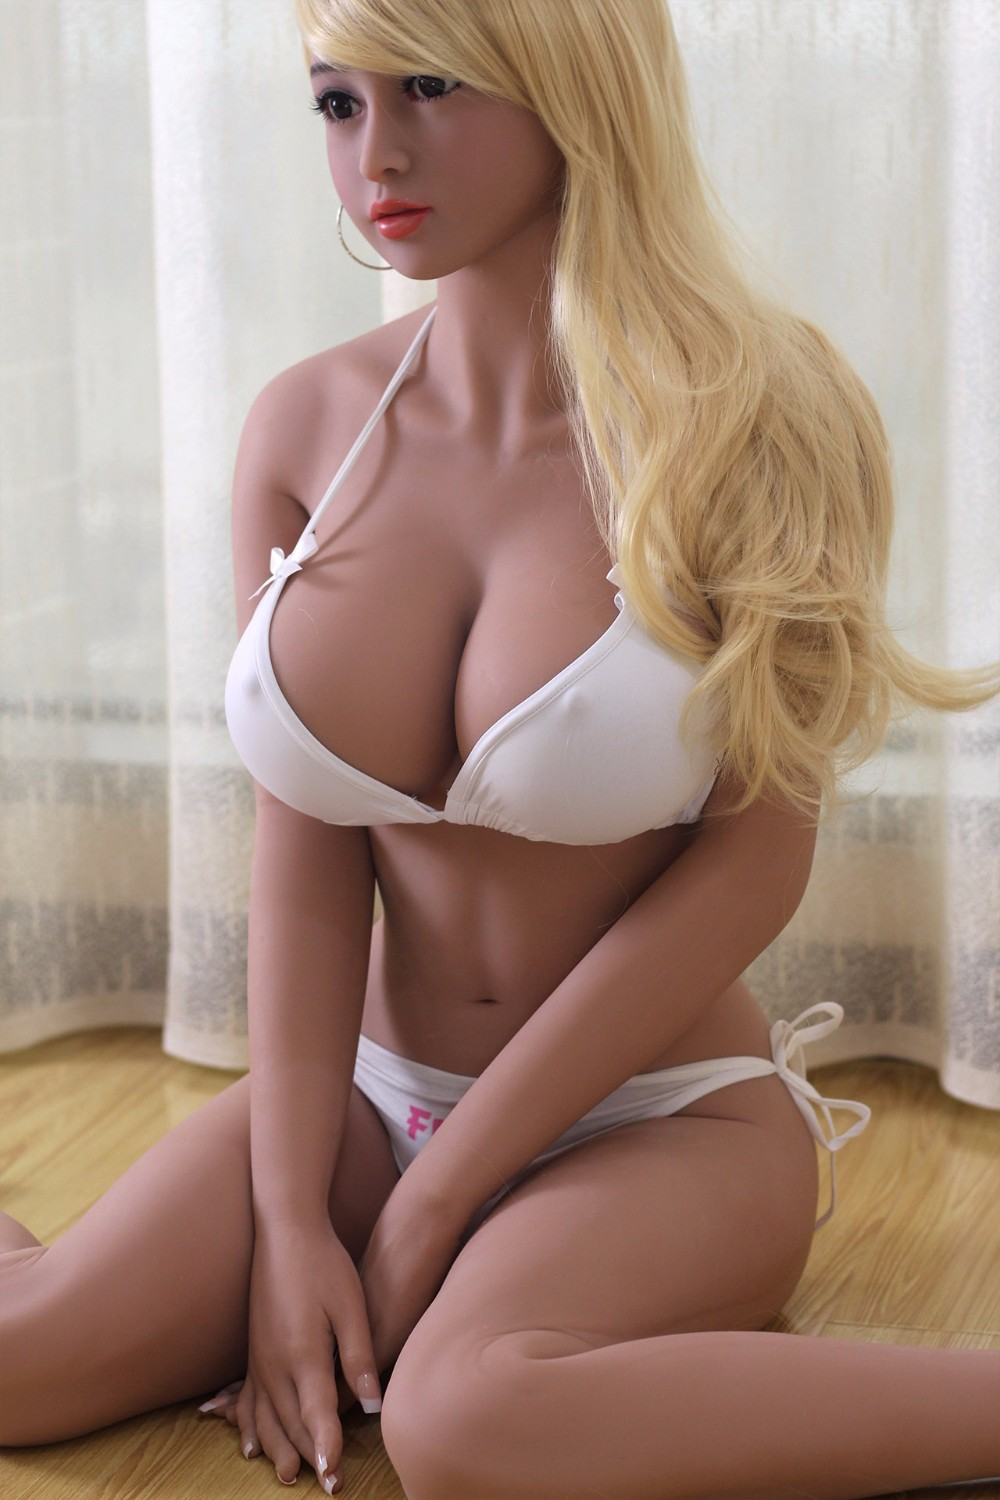 european blonde sexy goddess sexy girl silicone sex robot sex doll